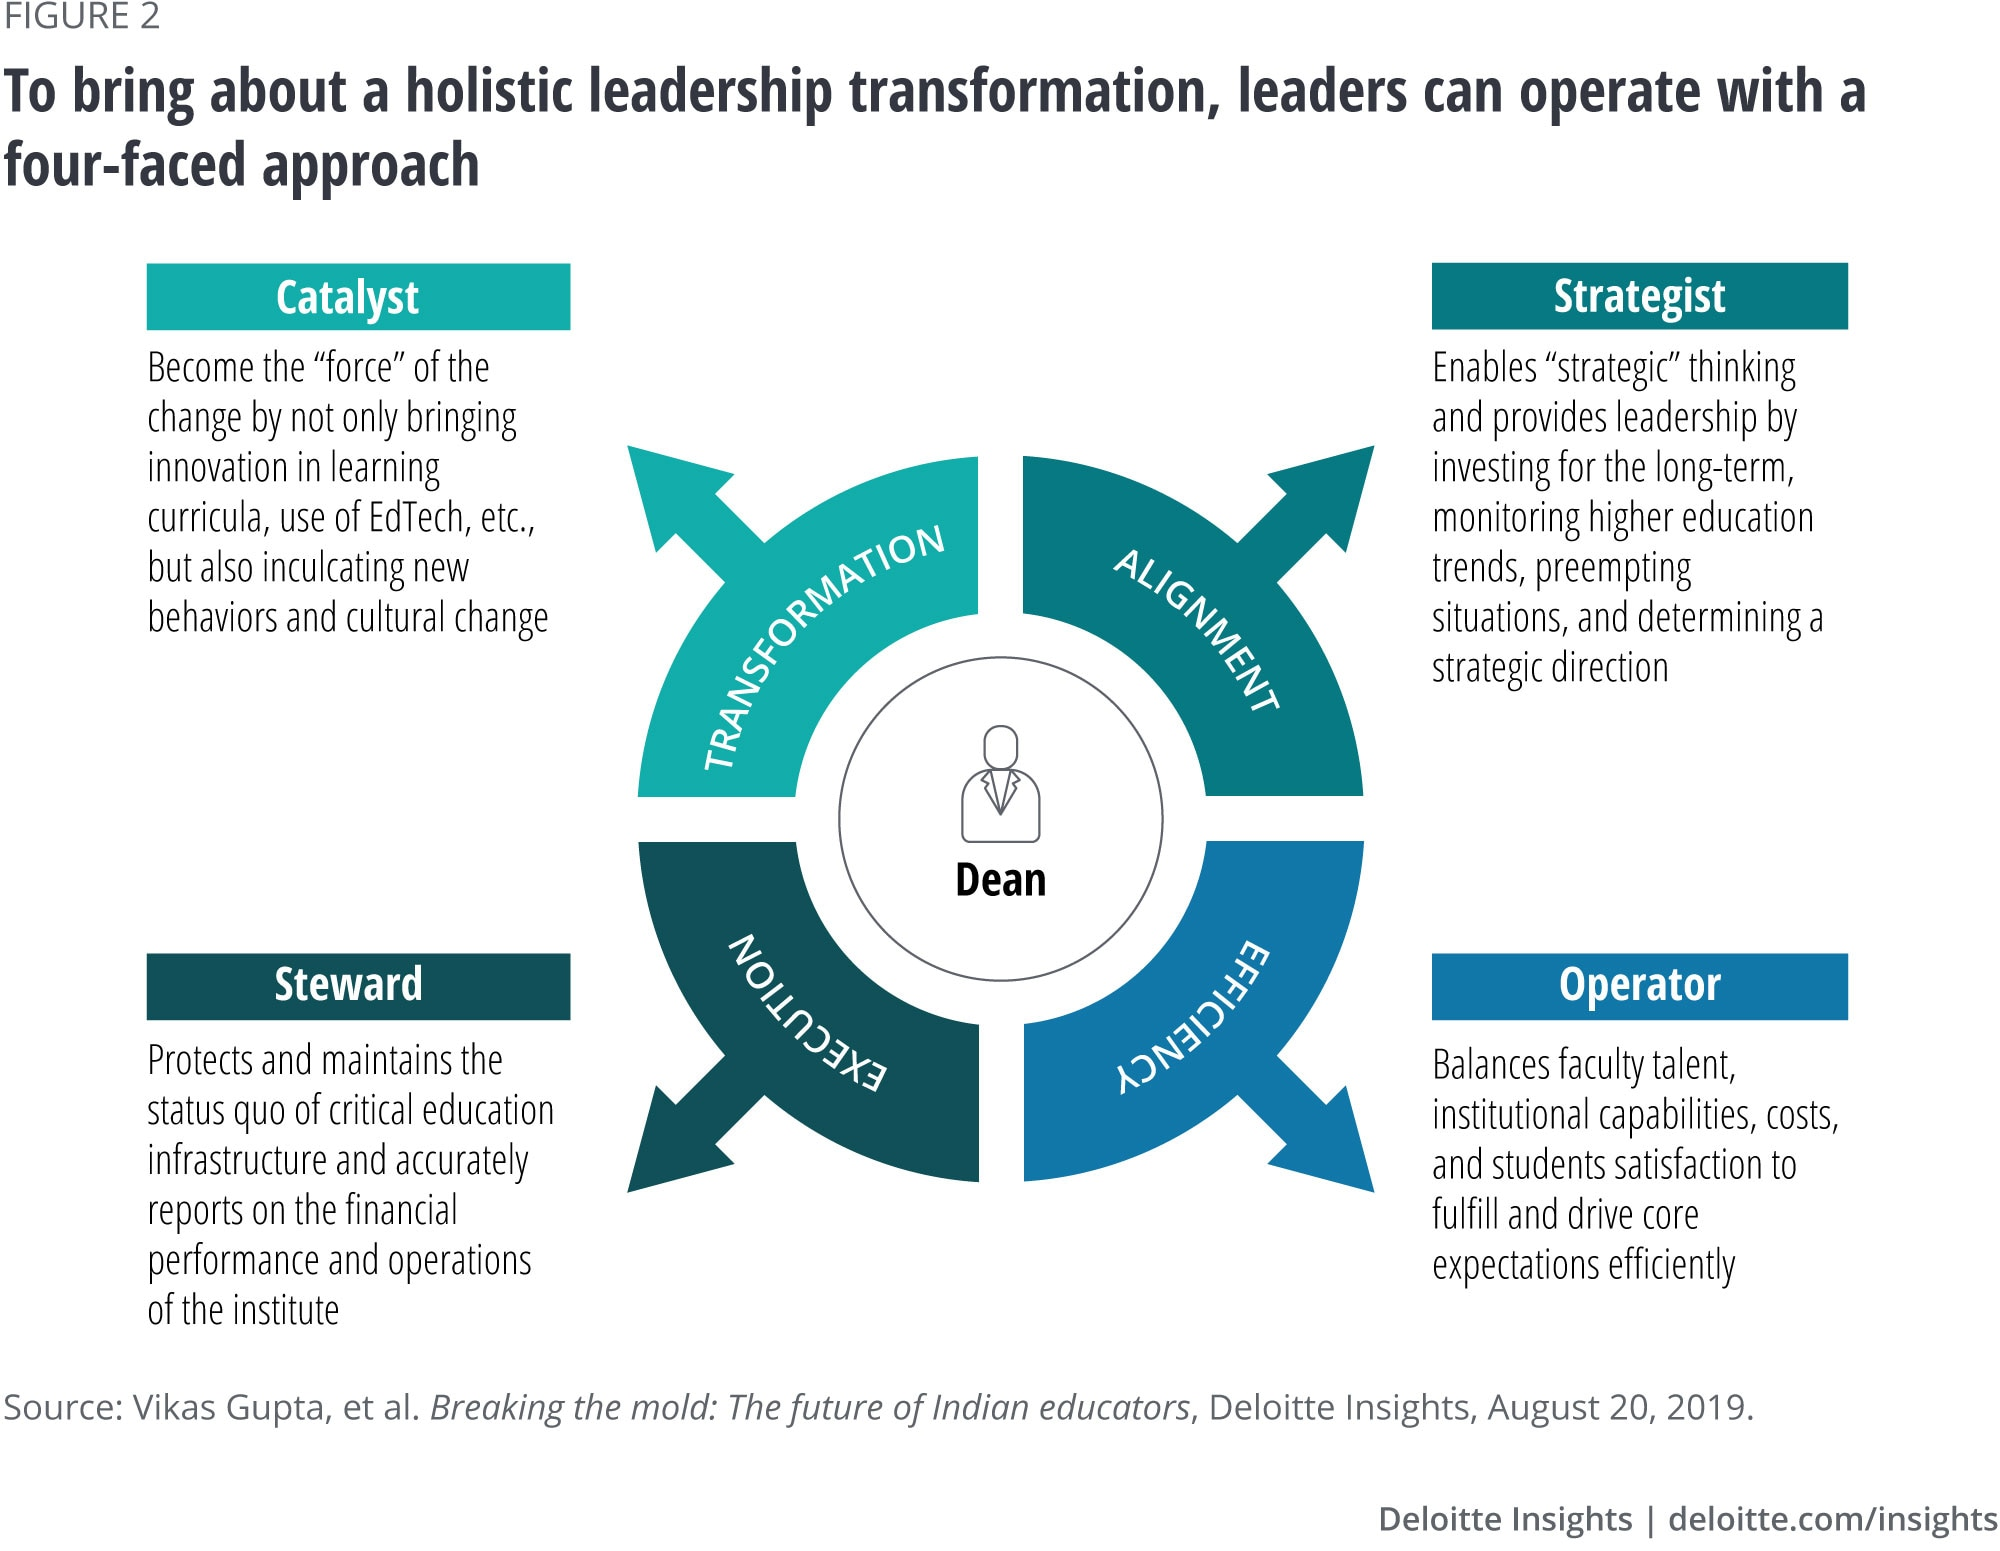 To bring about a holistic leadership transformation, leaders can operate with a four-faced approach